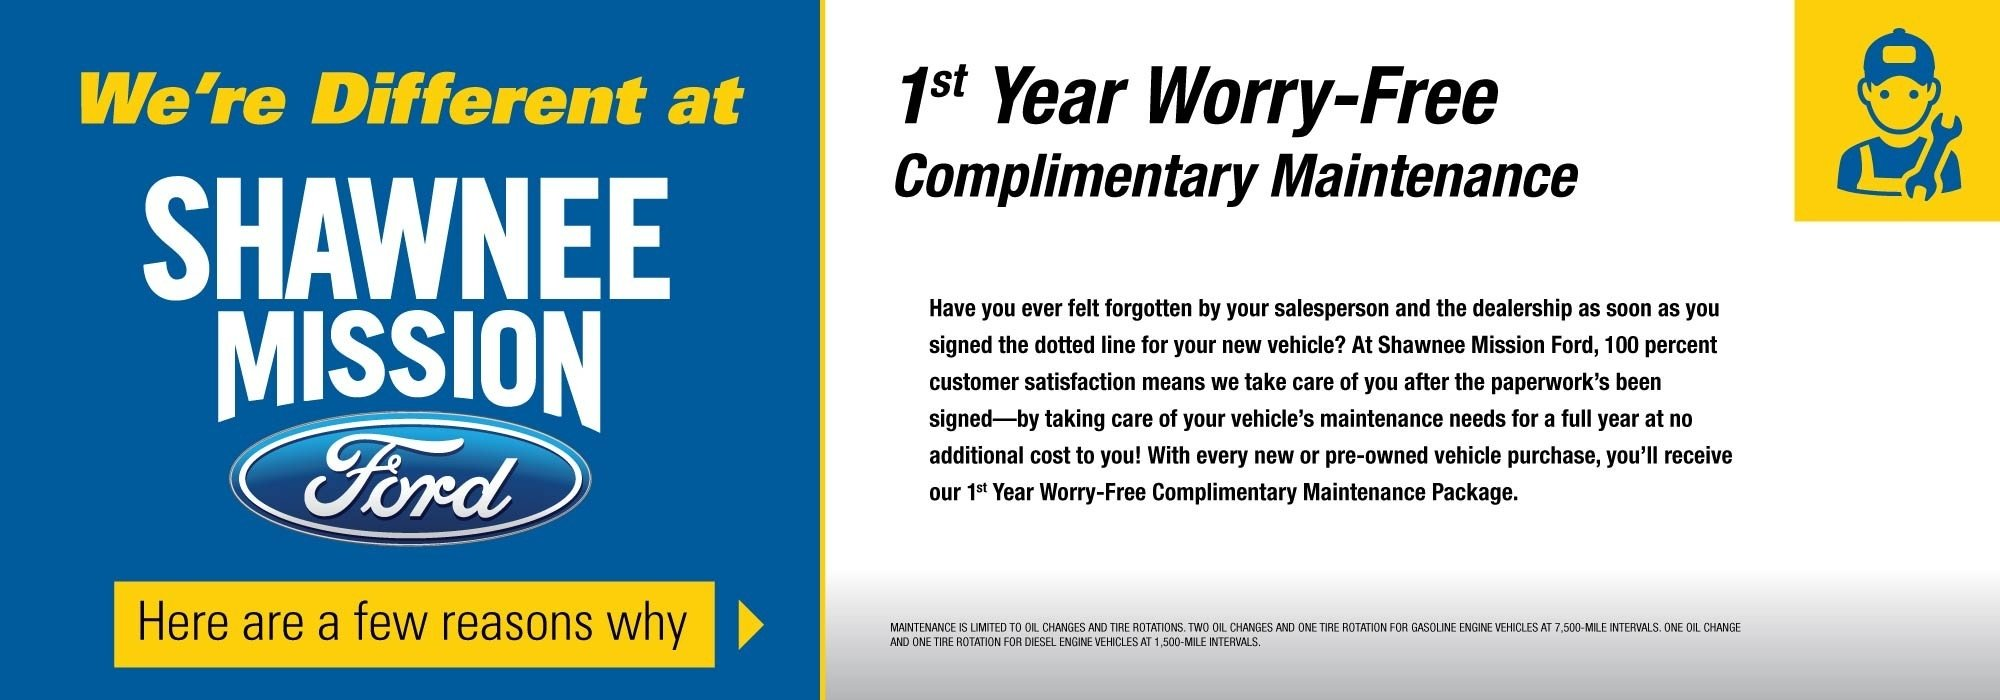 1 Year Worry-Free Complimentary Maintenance